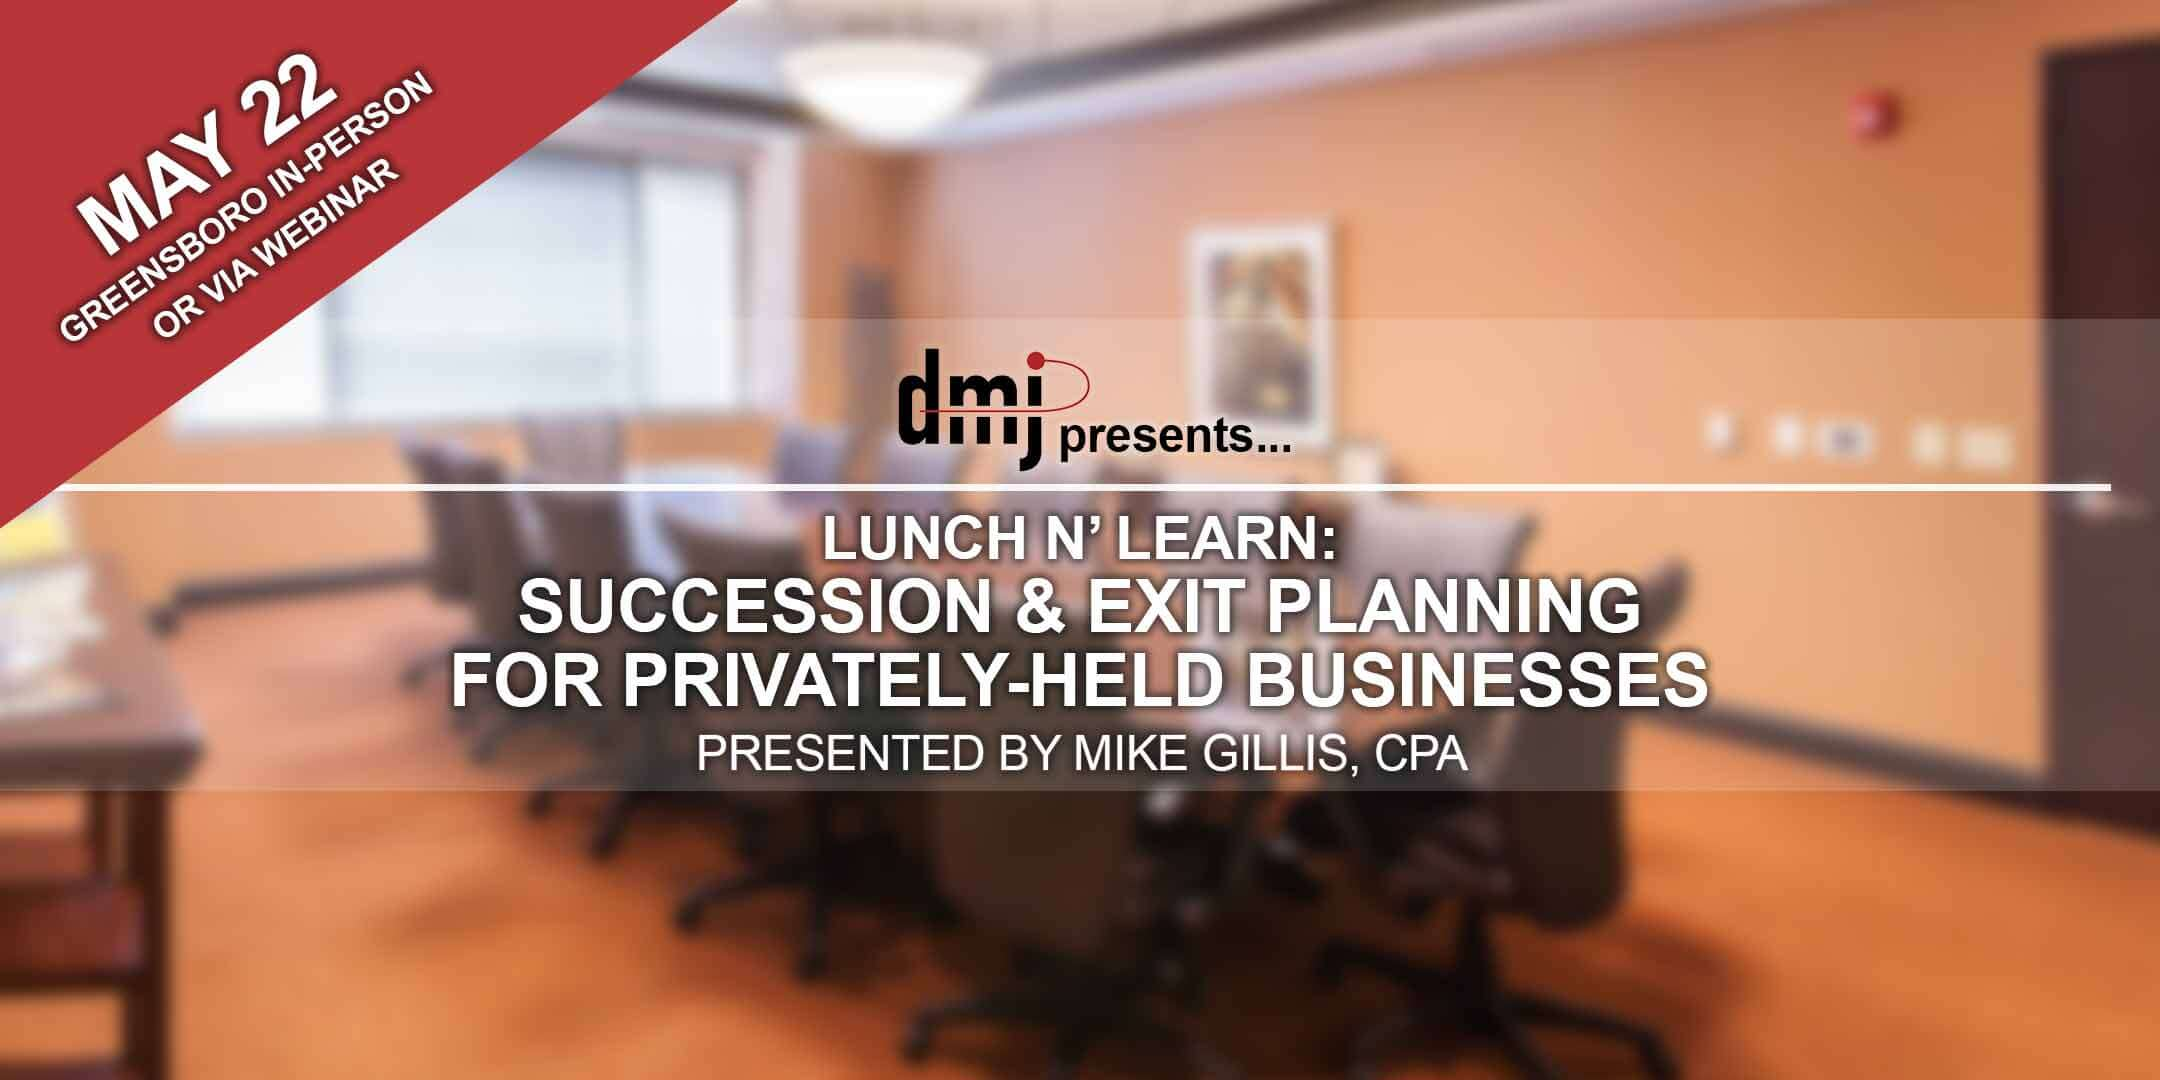 Lunch n' Learn: Succession & Exit Planning for Privately Held Businesses (Greensboro In-Person & Webinar)